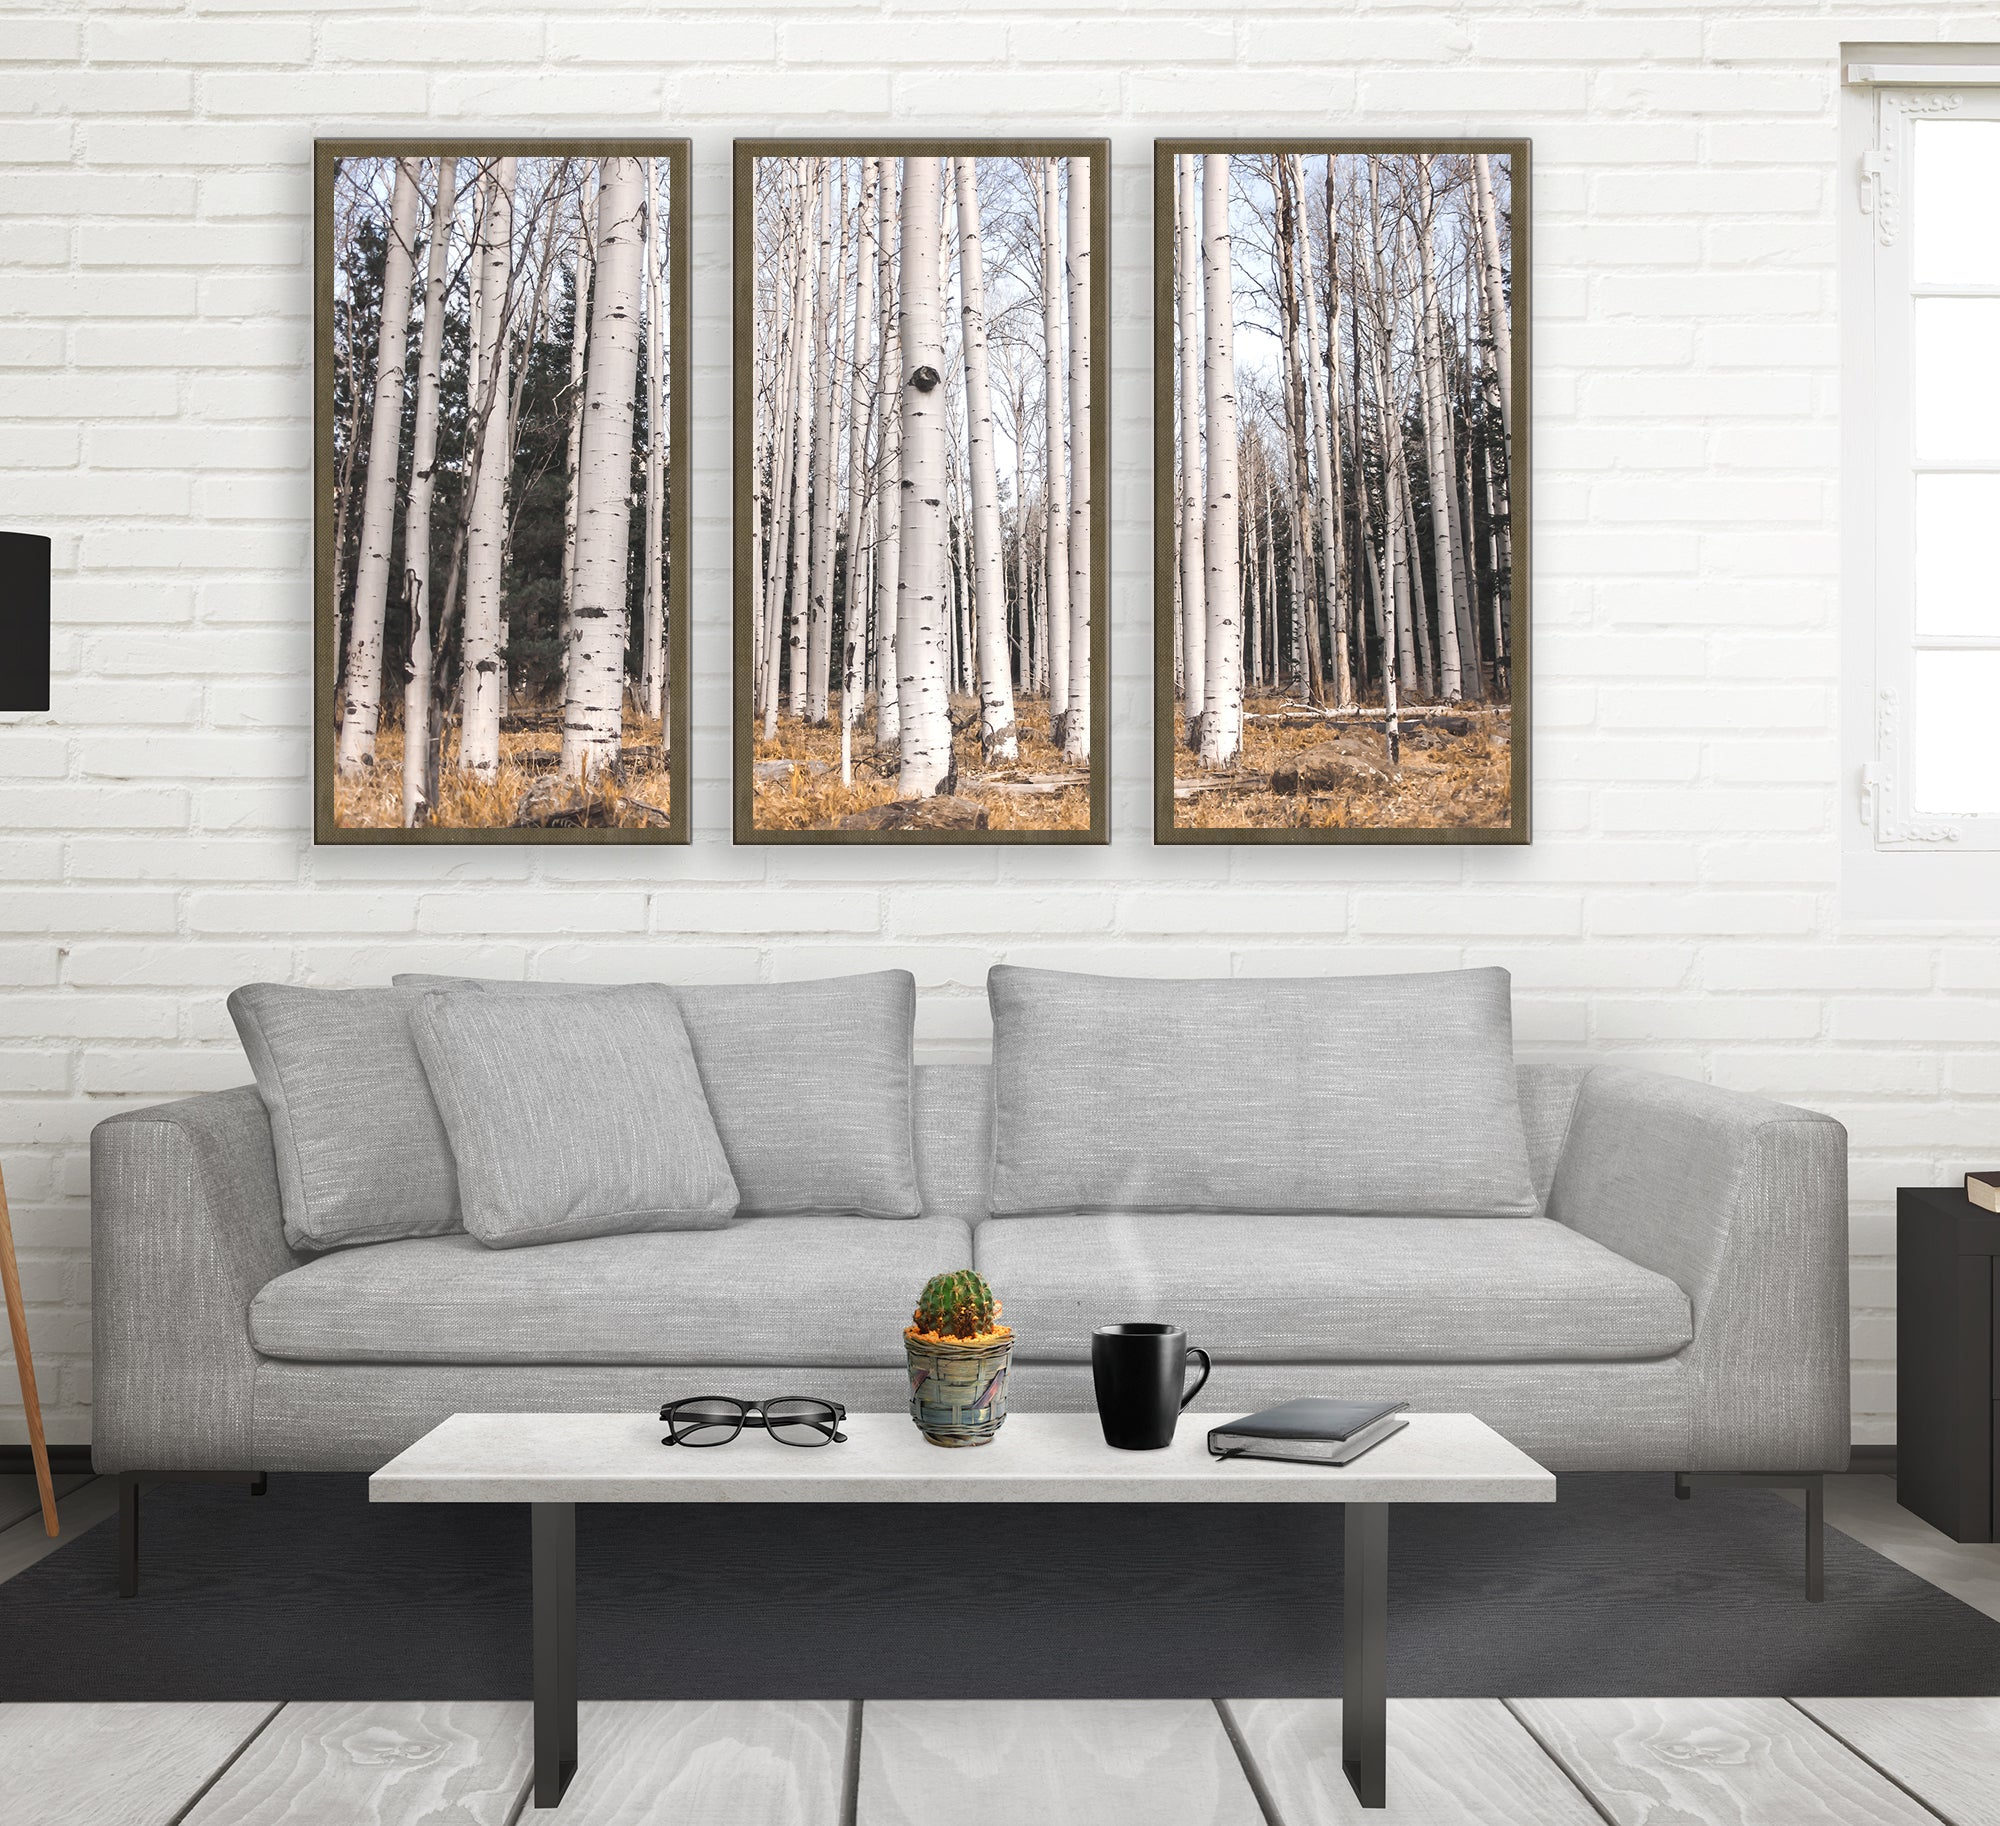 Birch Forest Tryptic, Large Canvas Wall Art or 3 Prints